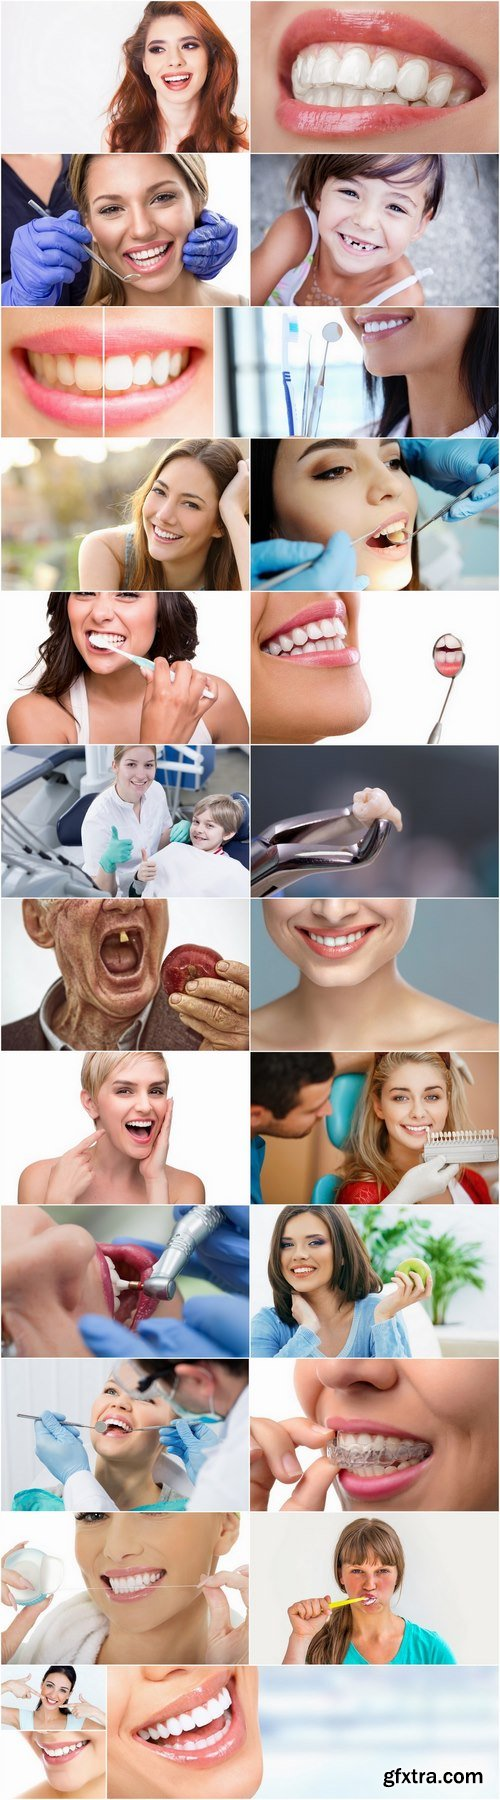 Tooth beautiful smile dentist mouth 25 HQ Jpeg